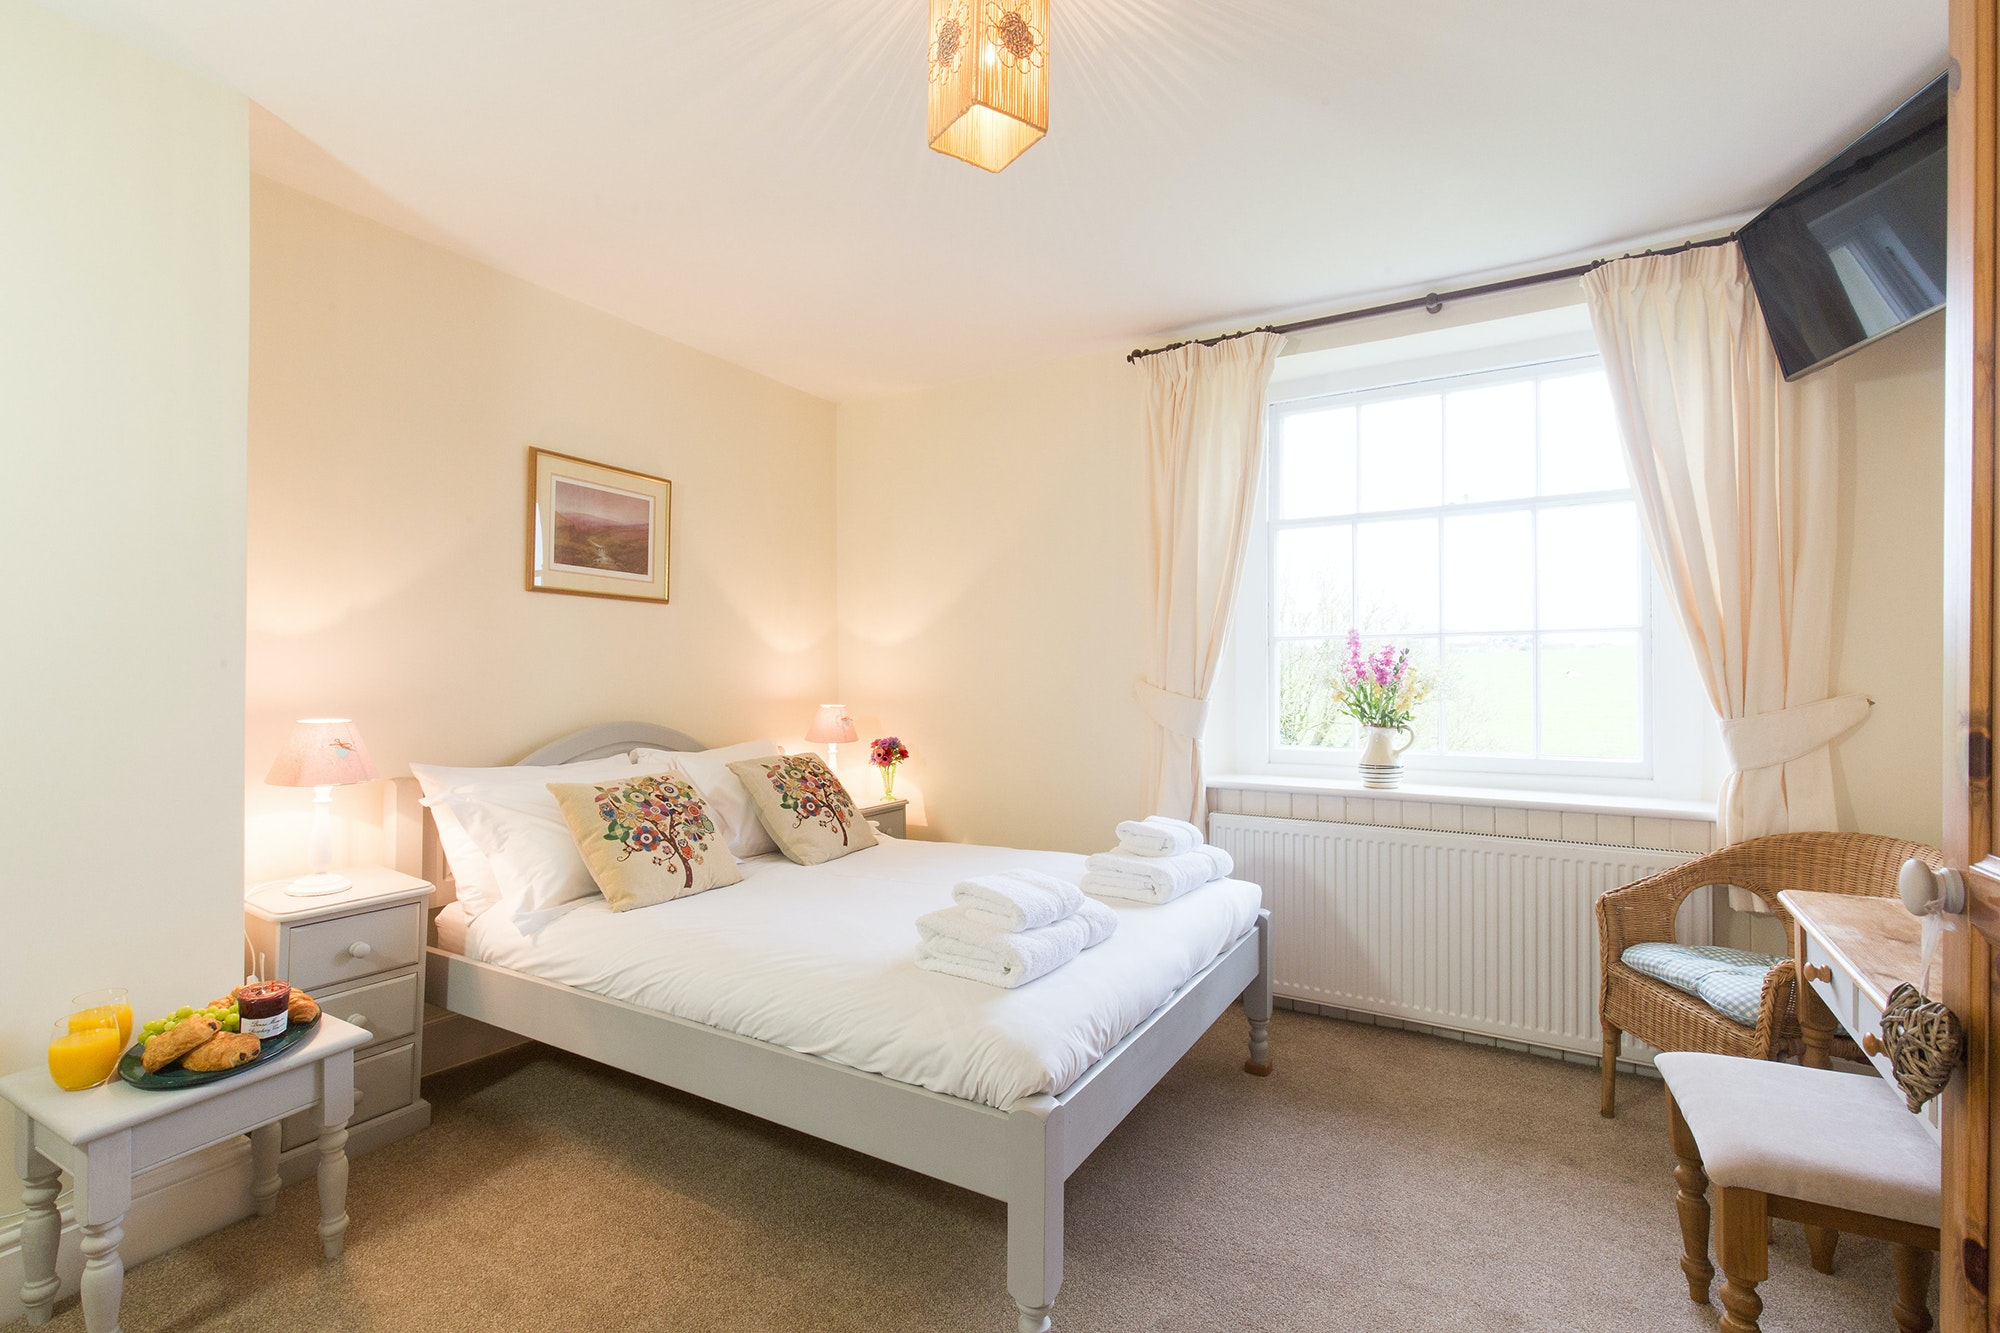 ... Pound Farm   Bedroom 5: With A View Over The Walled Garden To The Field